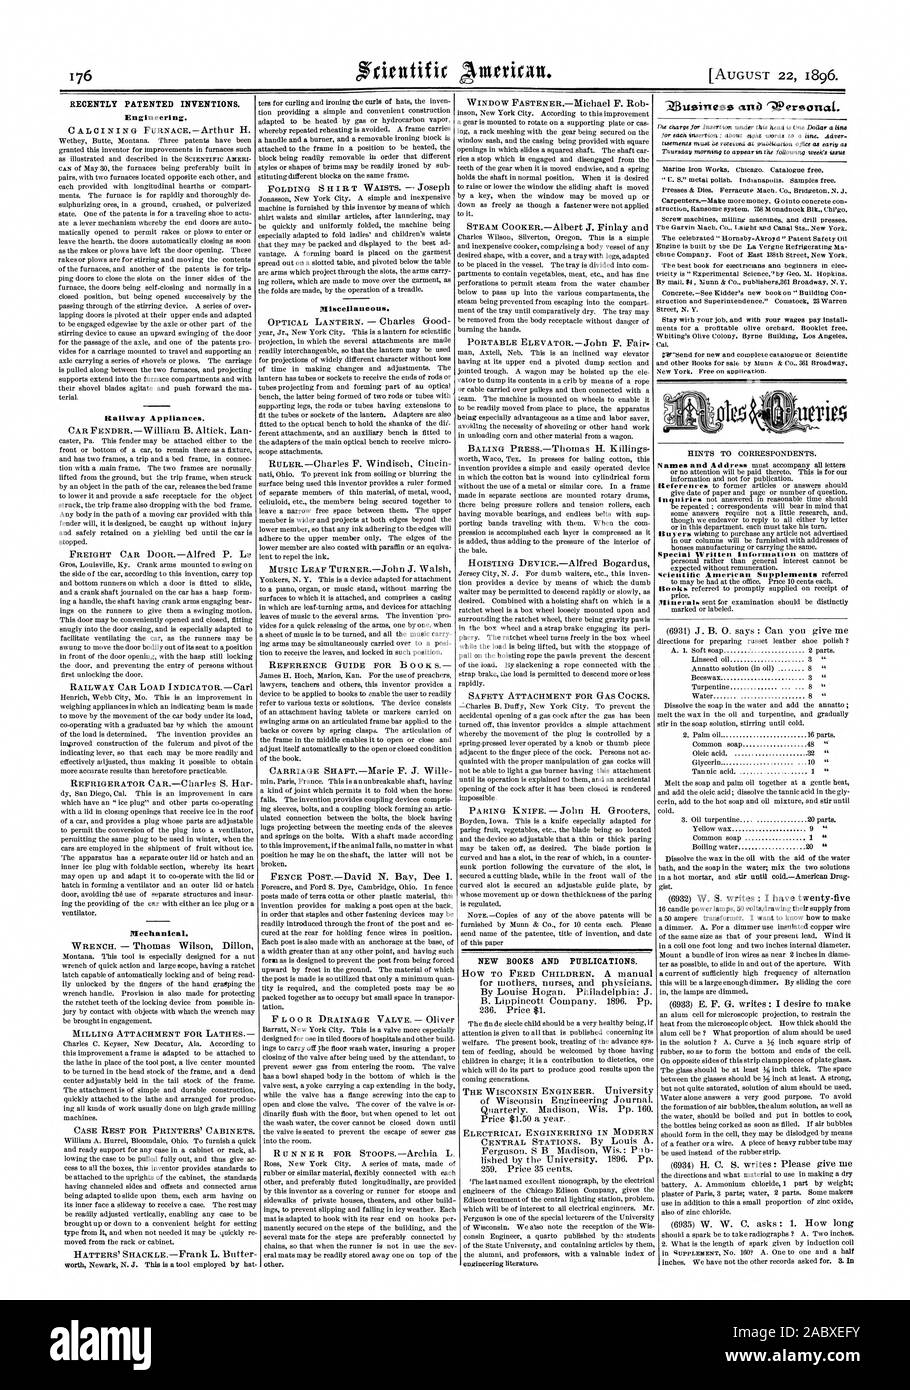 RECENTLY PATENTED INVENTIONS. Engineering. Railway Appliances. Mechanical. Miscellaneous. NEW BOOKS AND PUBLICATIONS. 1, scientific american, 1896-08-11 Stock Photo